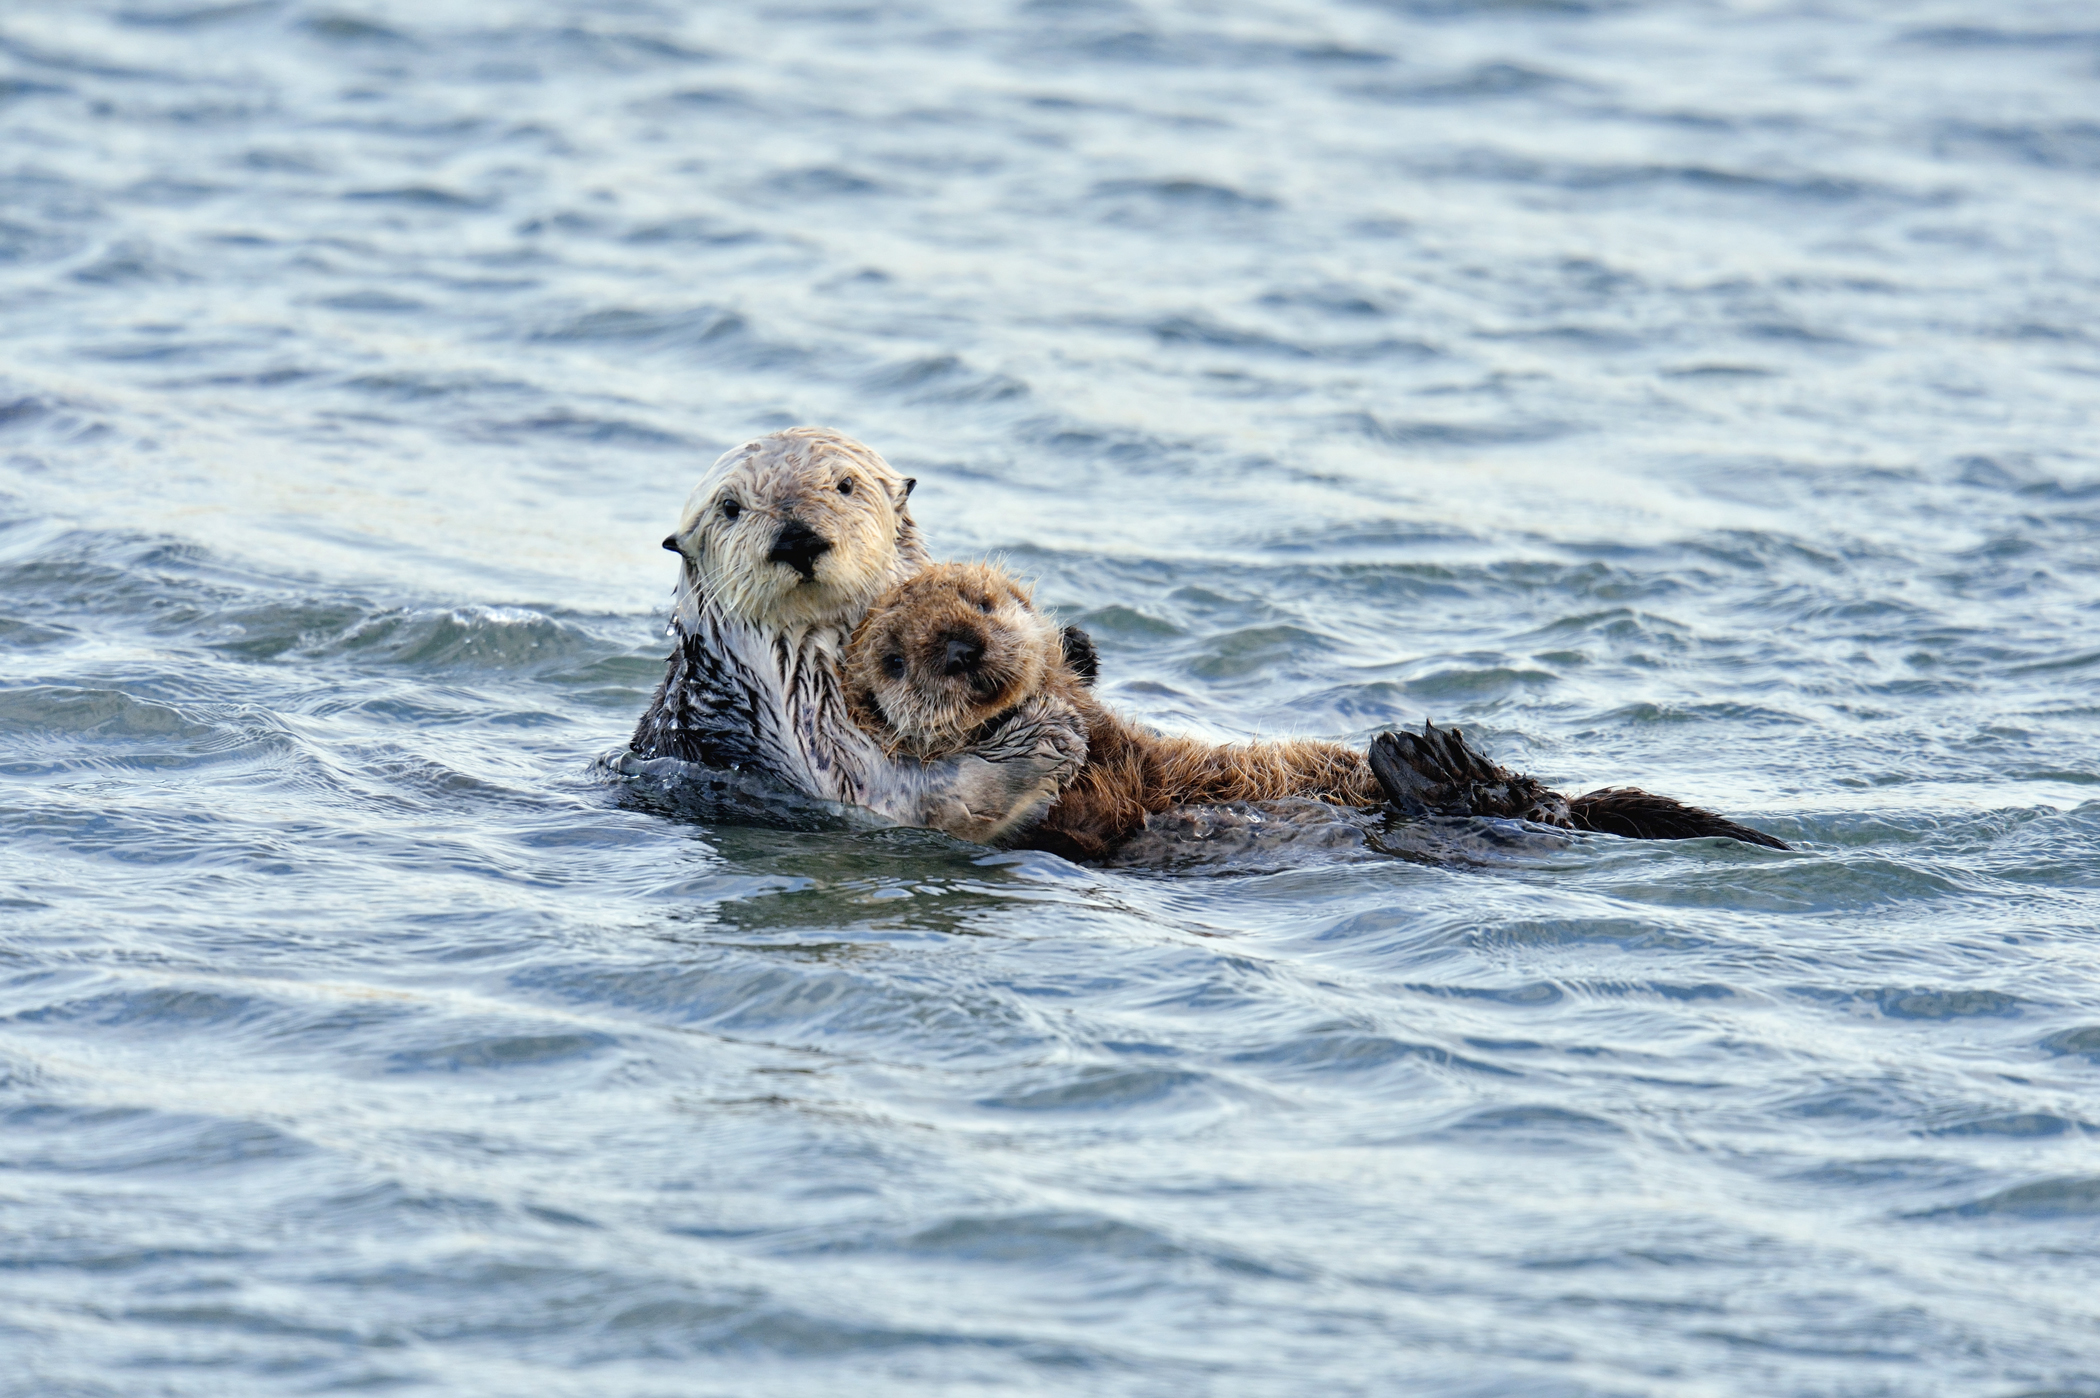 A sea otter family out for a Morro Bay swim